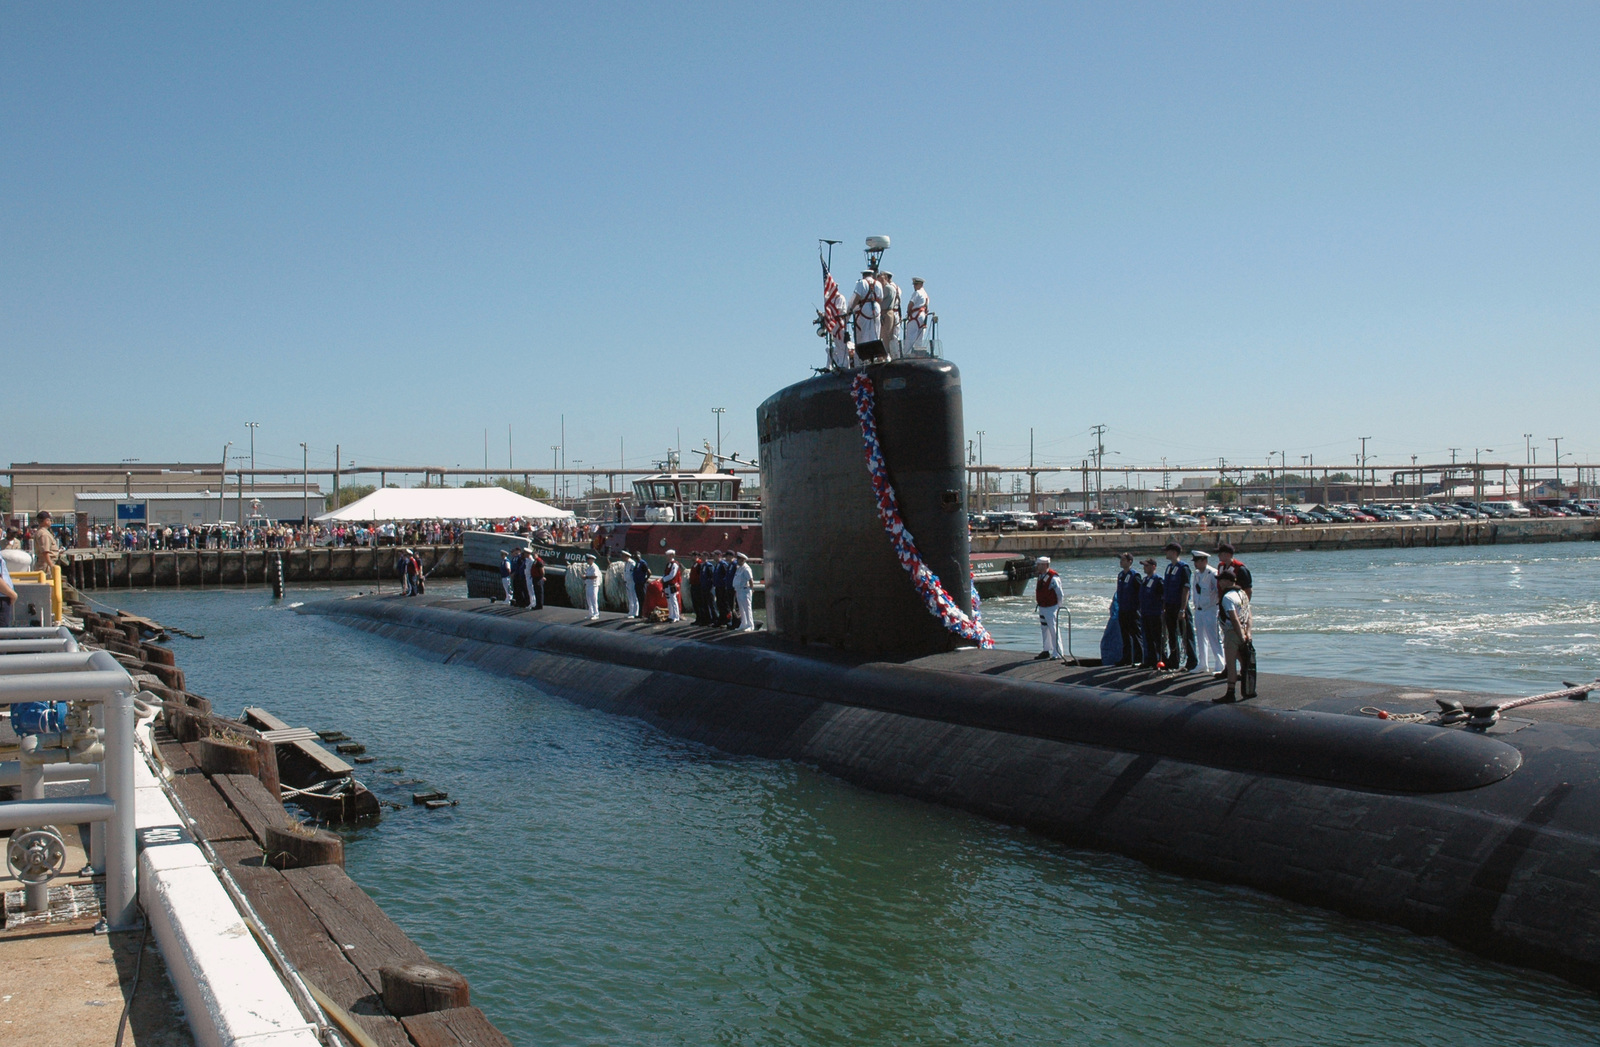 The US Navy (USN) Los Angeles Class Fast Attack Submarine USS